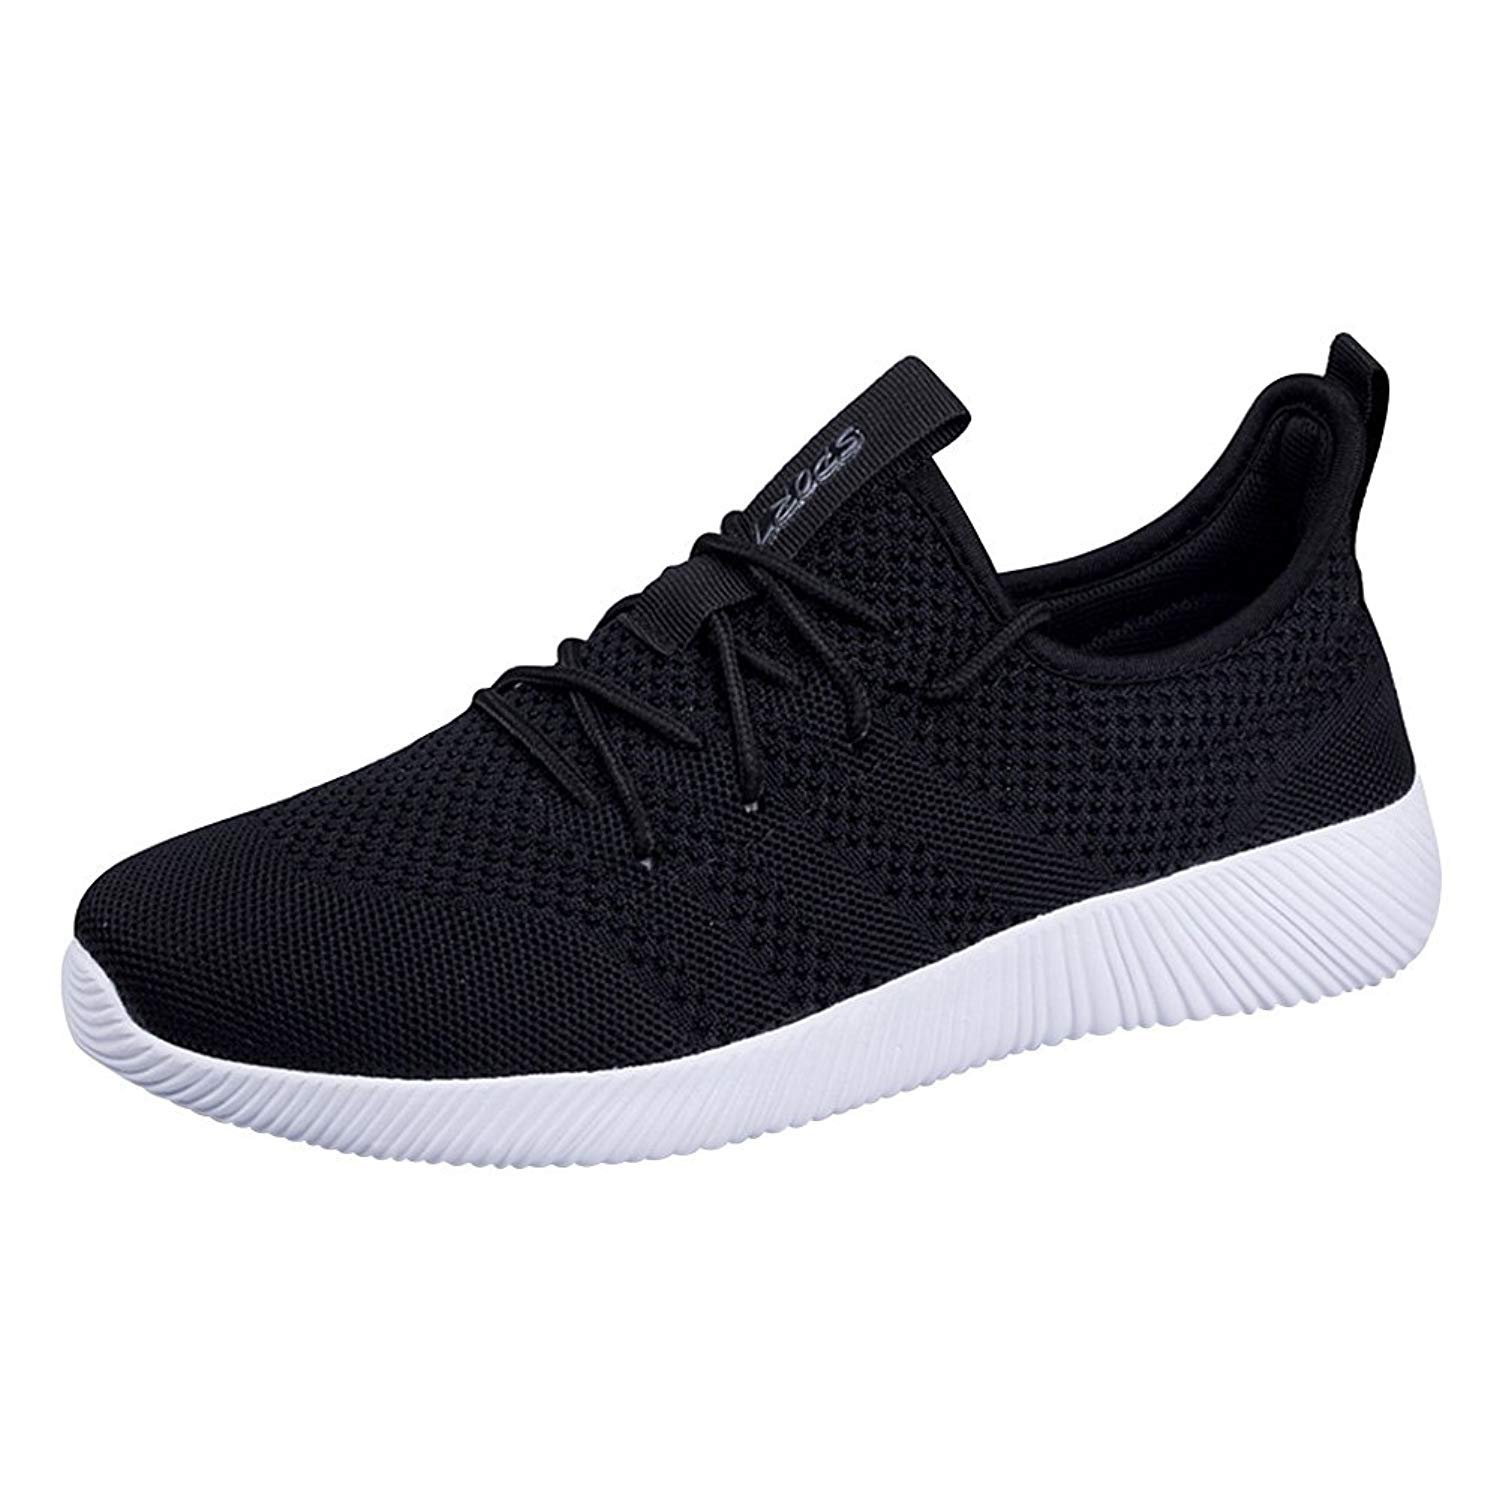 7bb366a66b3ed Padcod Men's and Women's Running Shoes Fashion Breathable Flyknit Sneakers  Mesh Soft Sole Casual Athletic Lightweight